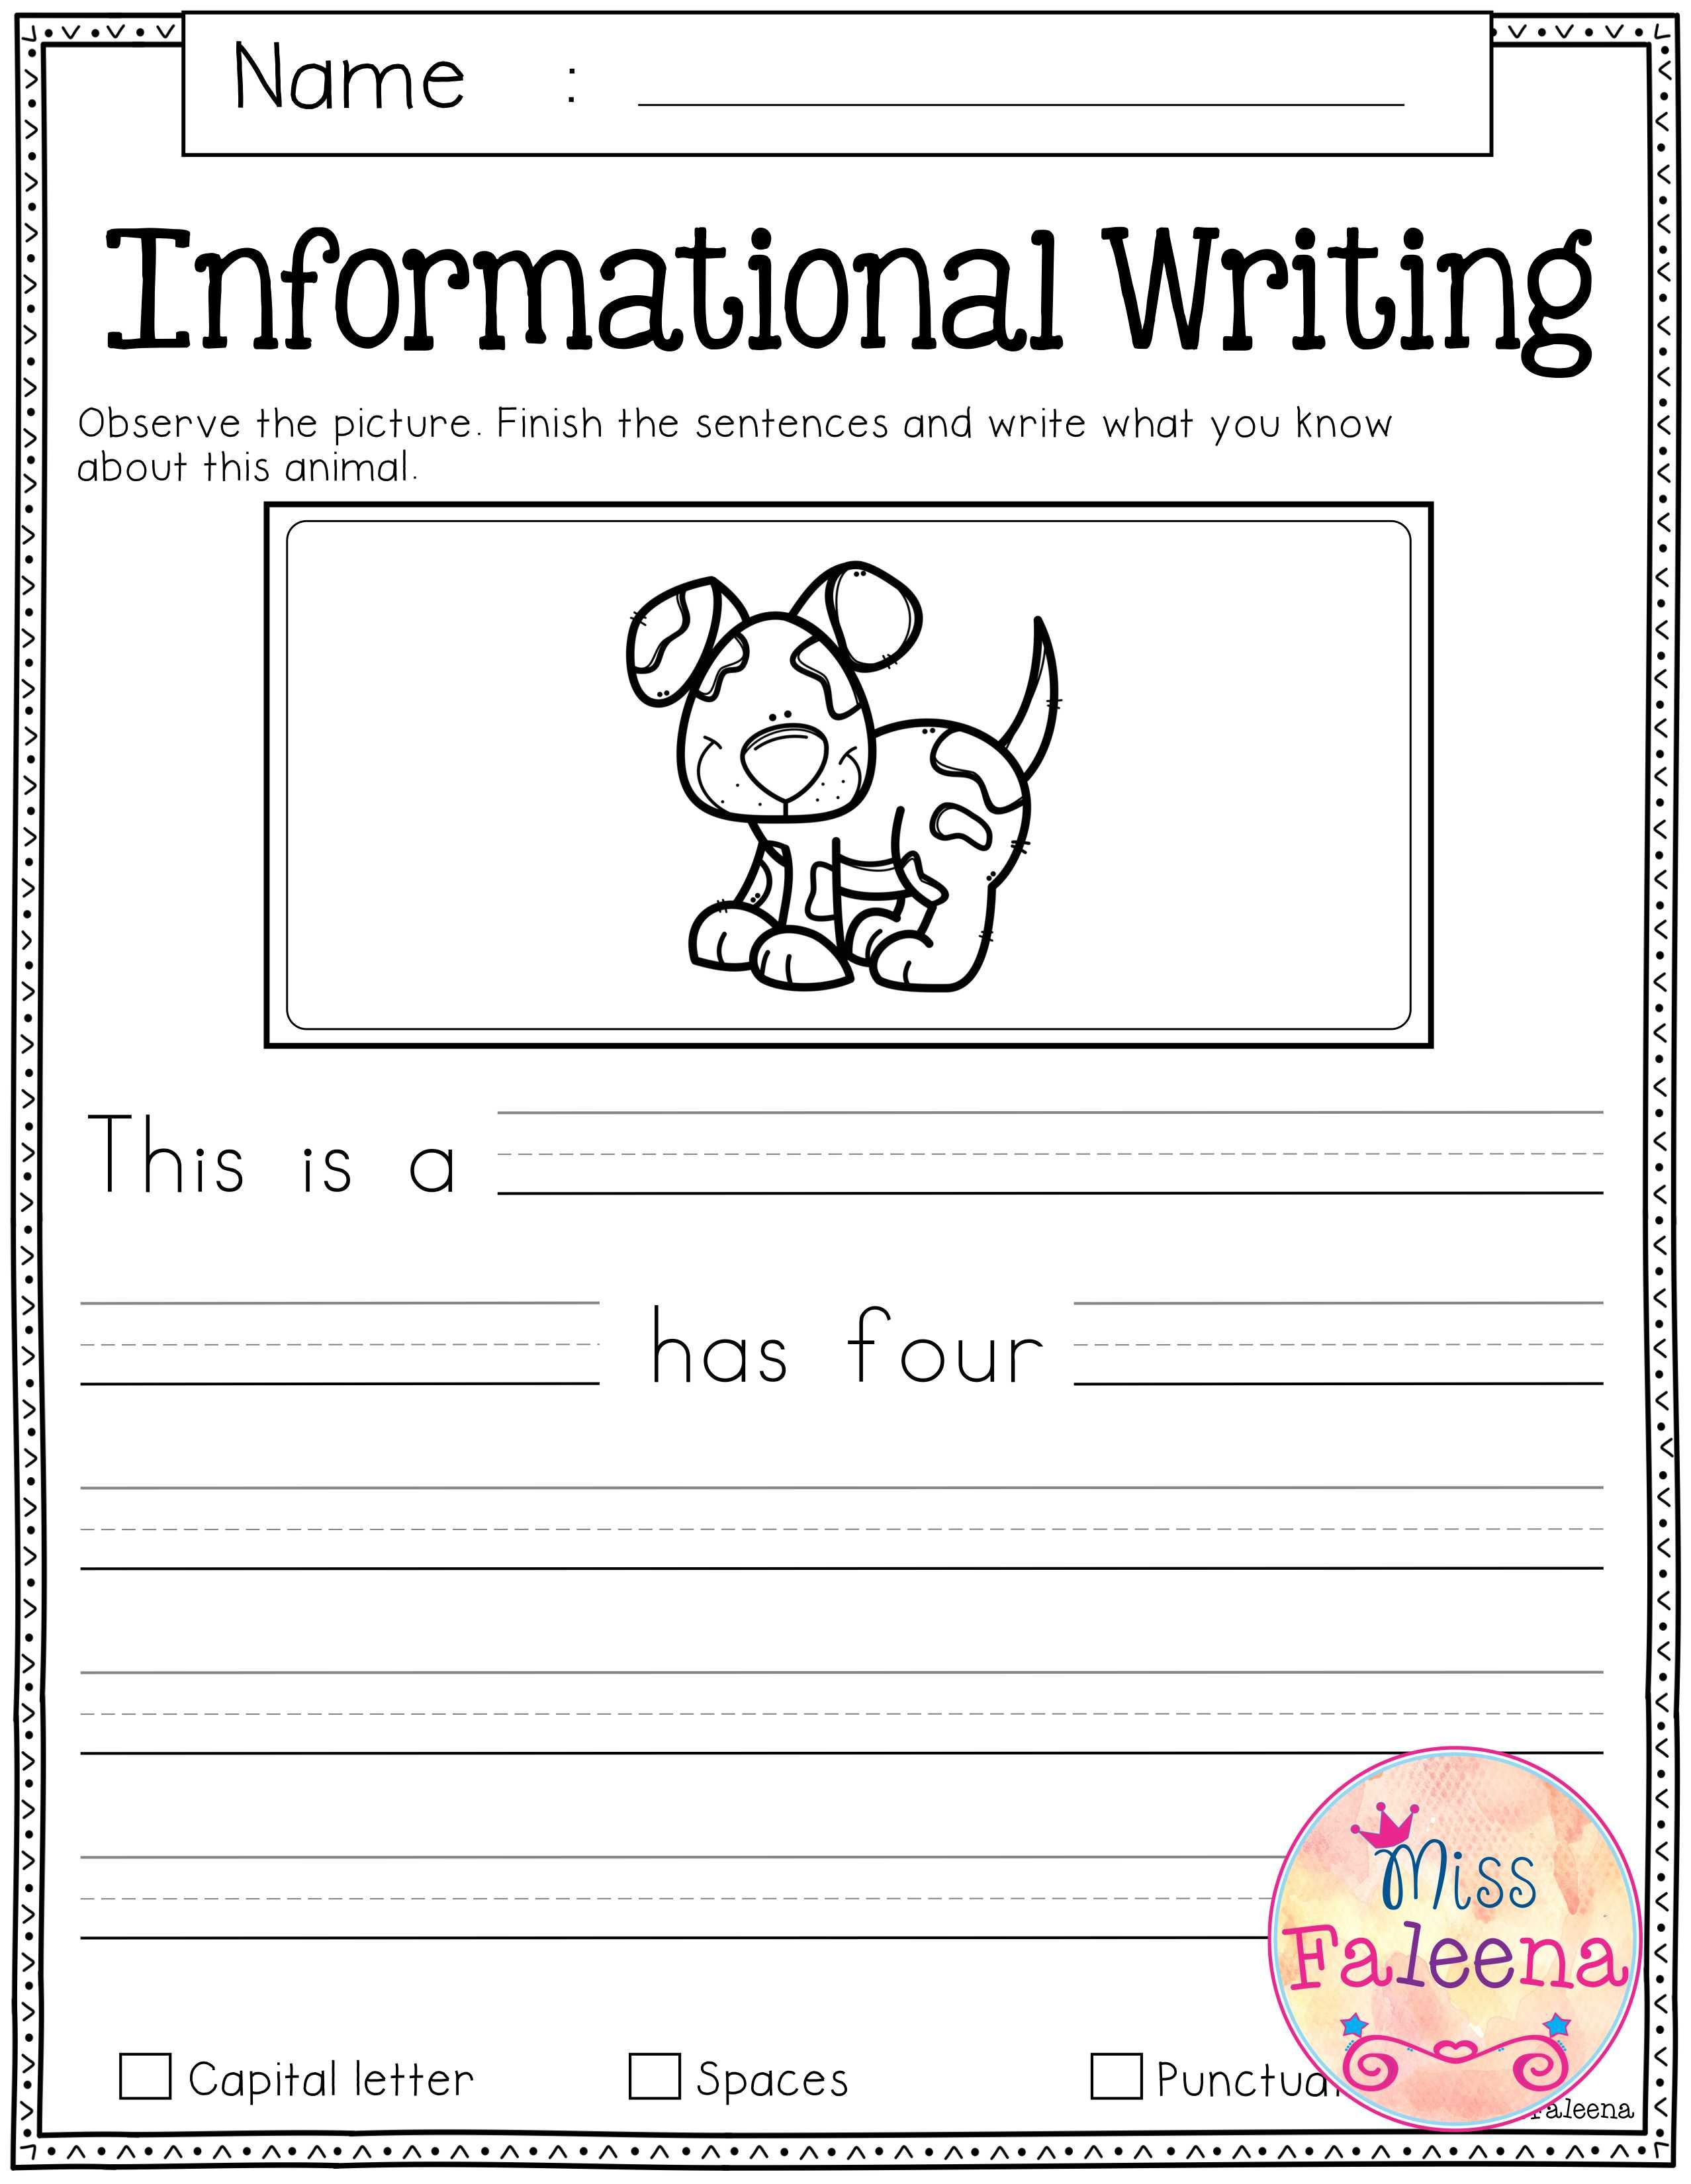 Free Writing Prompts | Informational Writing, Kindergarten